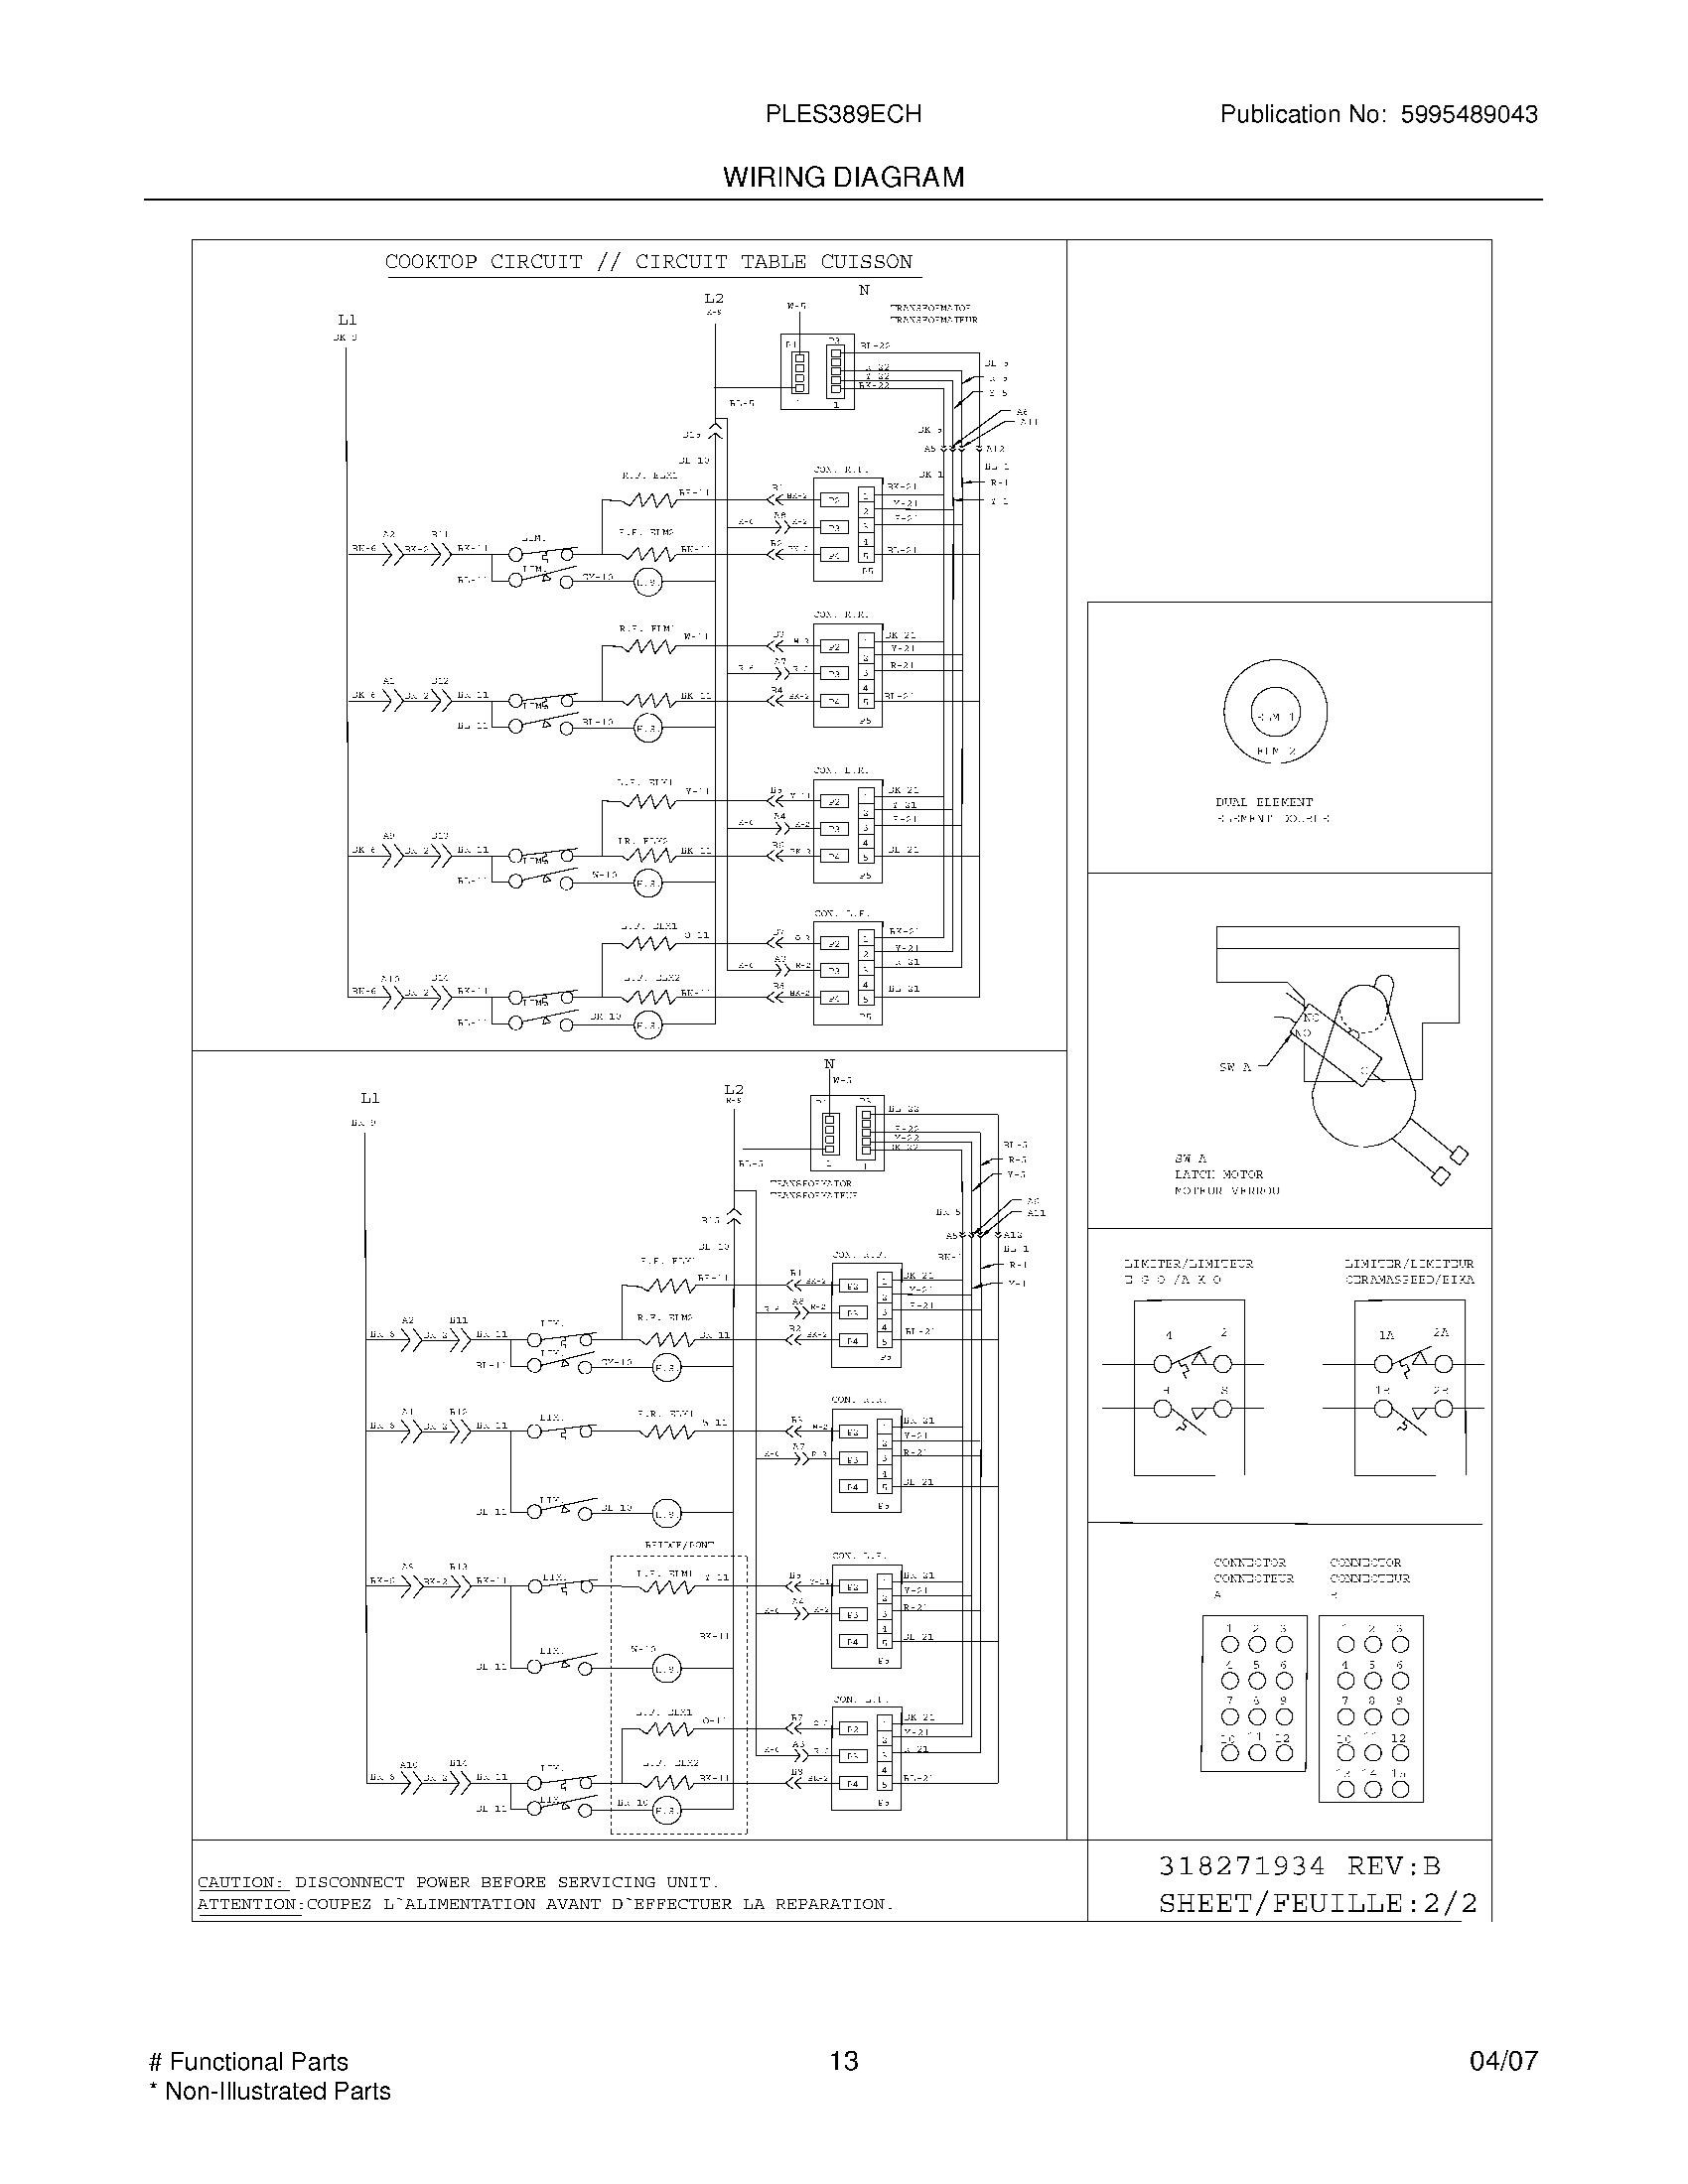 Network Switch Wiring Diagram 29 Images Cat 5 Cat5 On Nti Electroluximg 19000101 20150717 00146085width206 Cooktop 3 Way